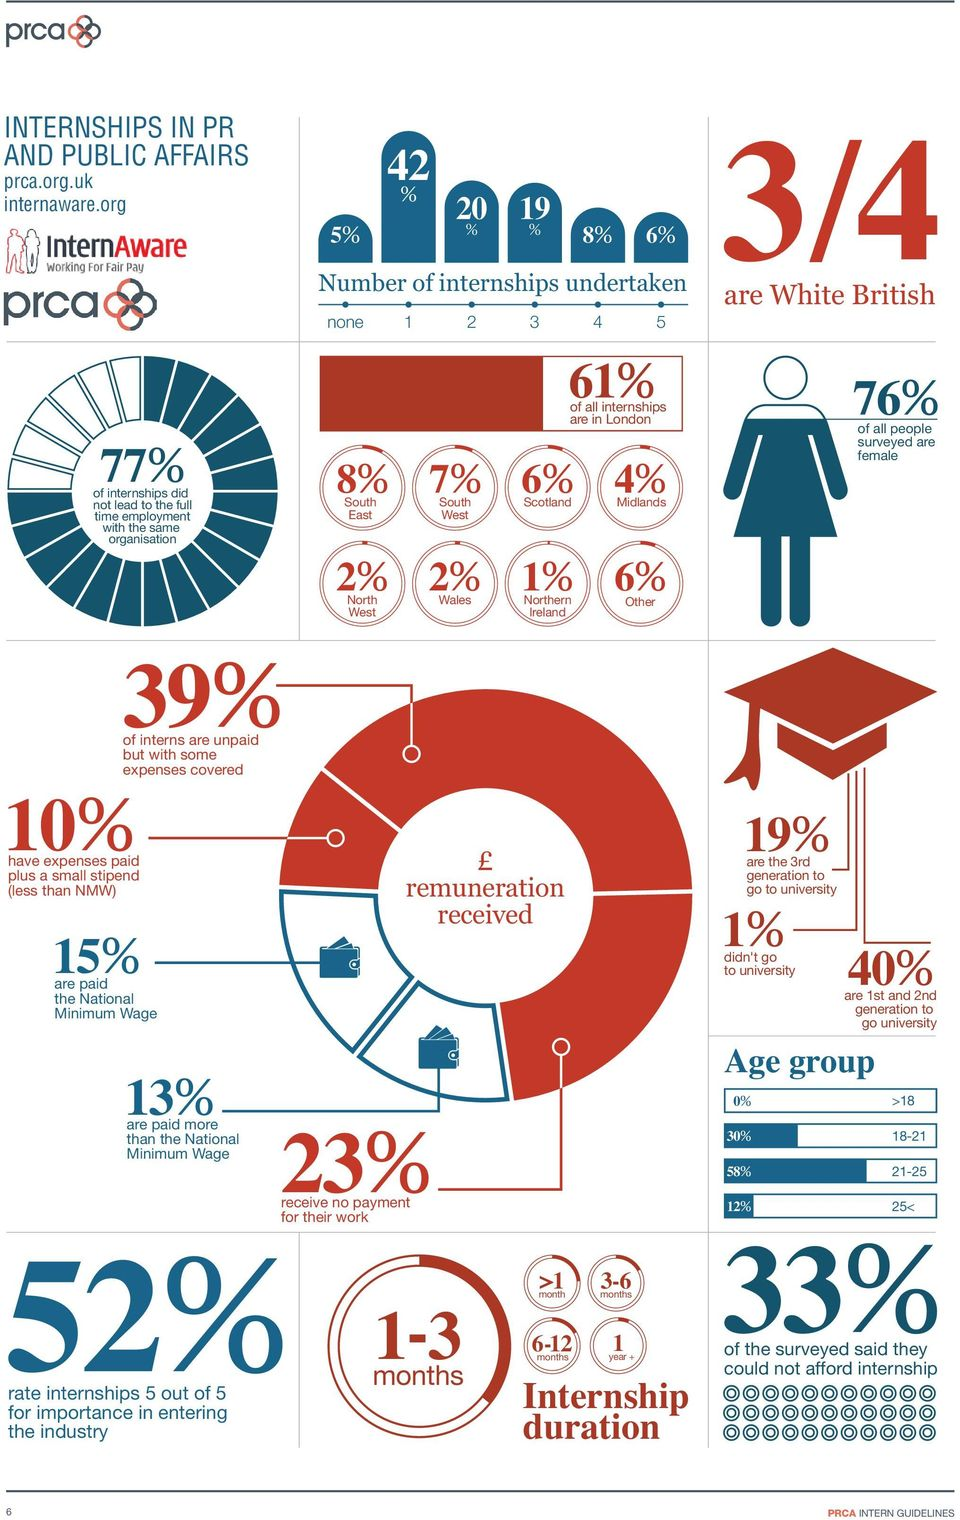 2% Wales 6% Scotland 1% Northern Ireland of all internships are in London 4% Midlands 6% Other of all people surveyed are female 10% have expenses paid plus a small stipend (less than NMW) 15% are